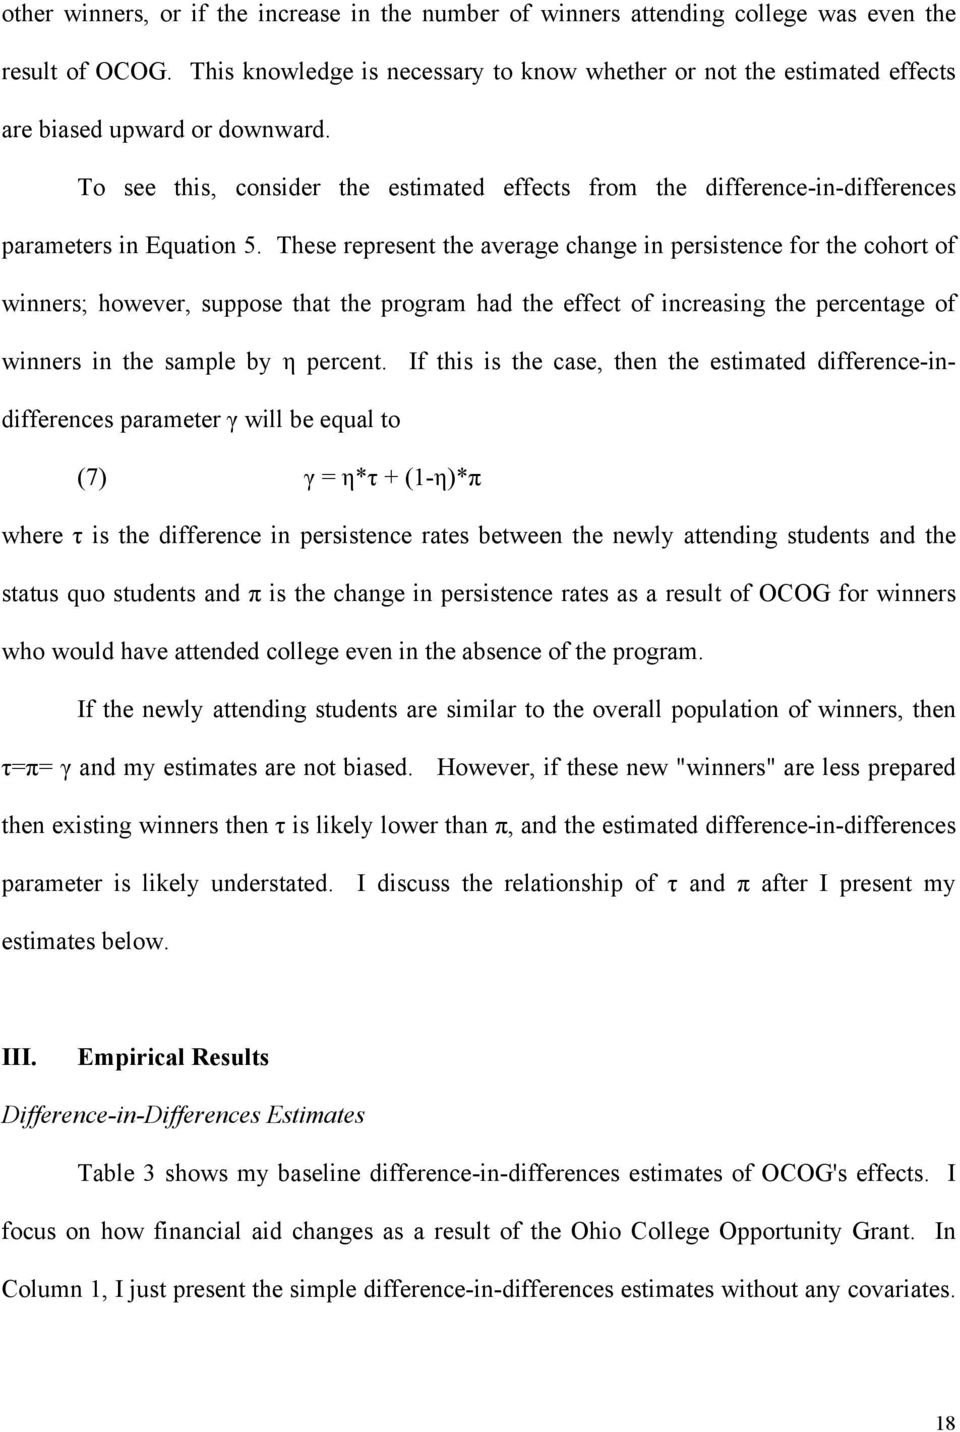 To see this, consider the estimated effects from the difference-in-differences parameters in Equation 5.